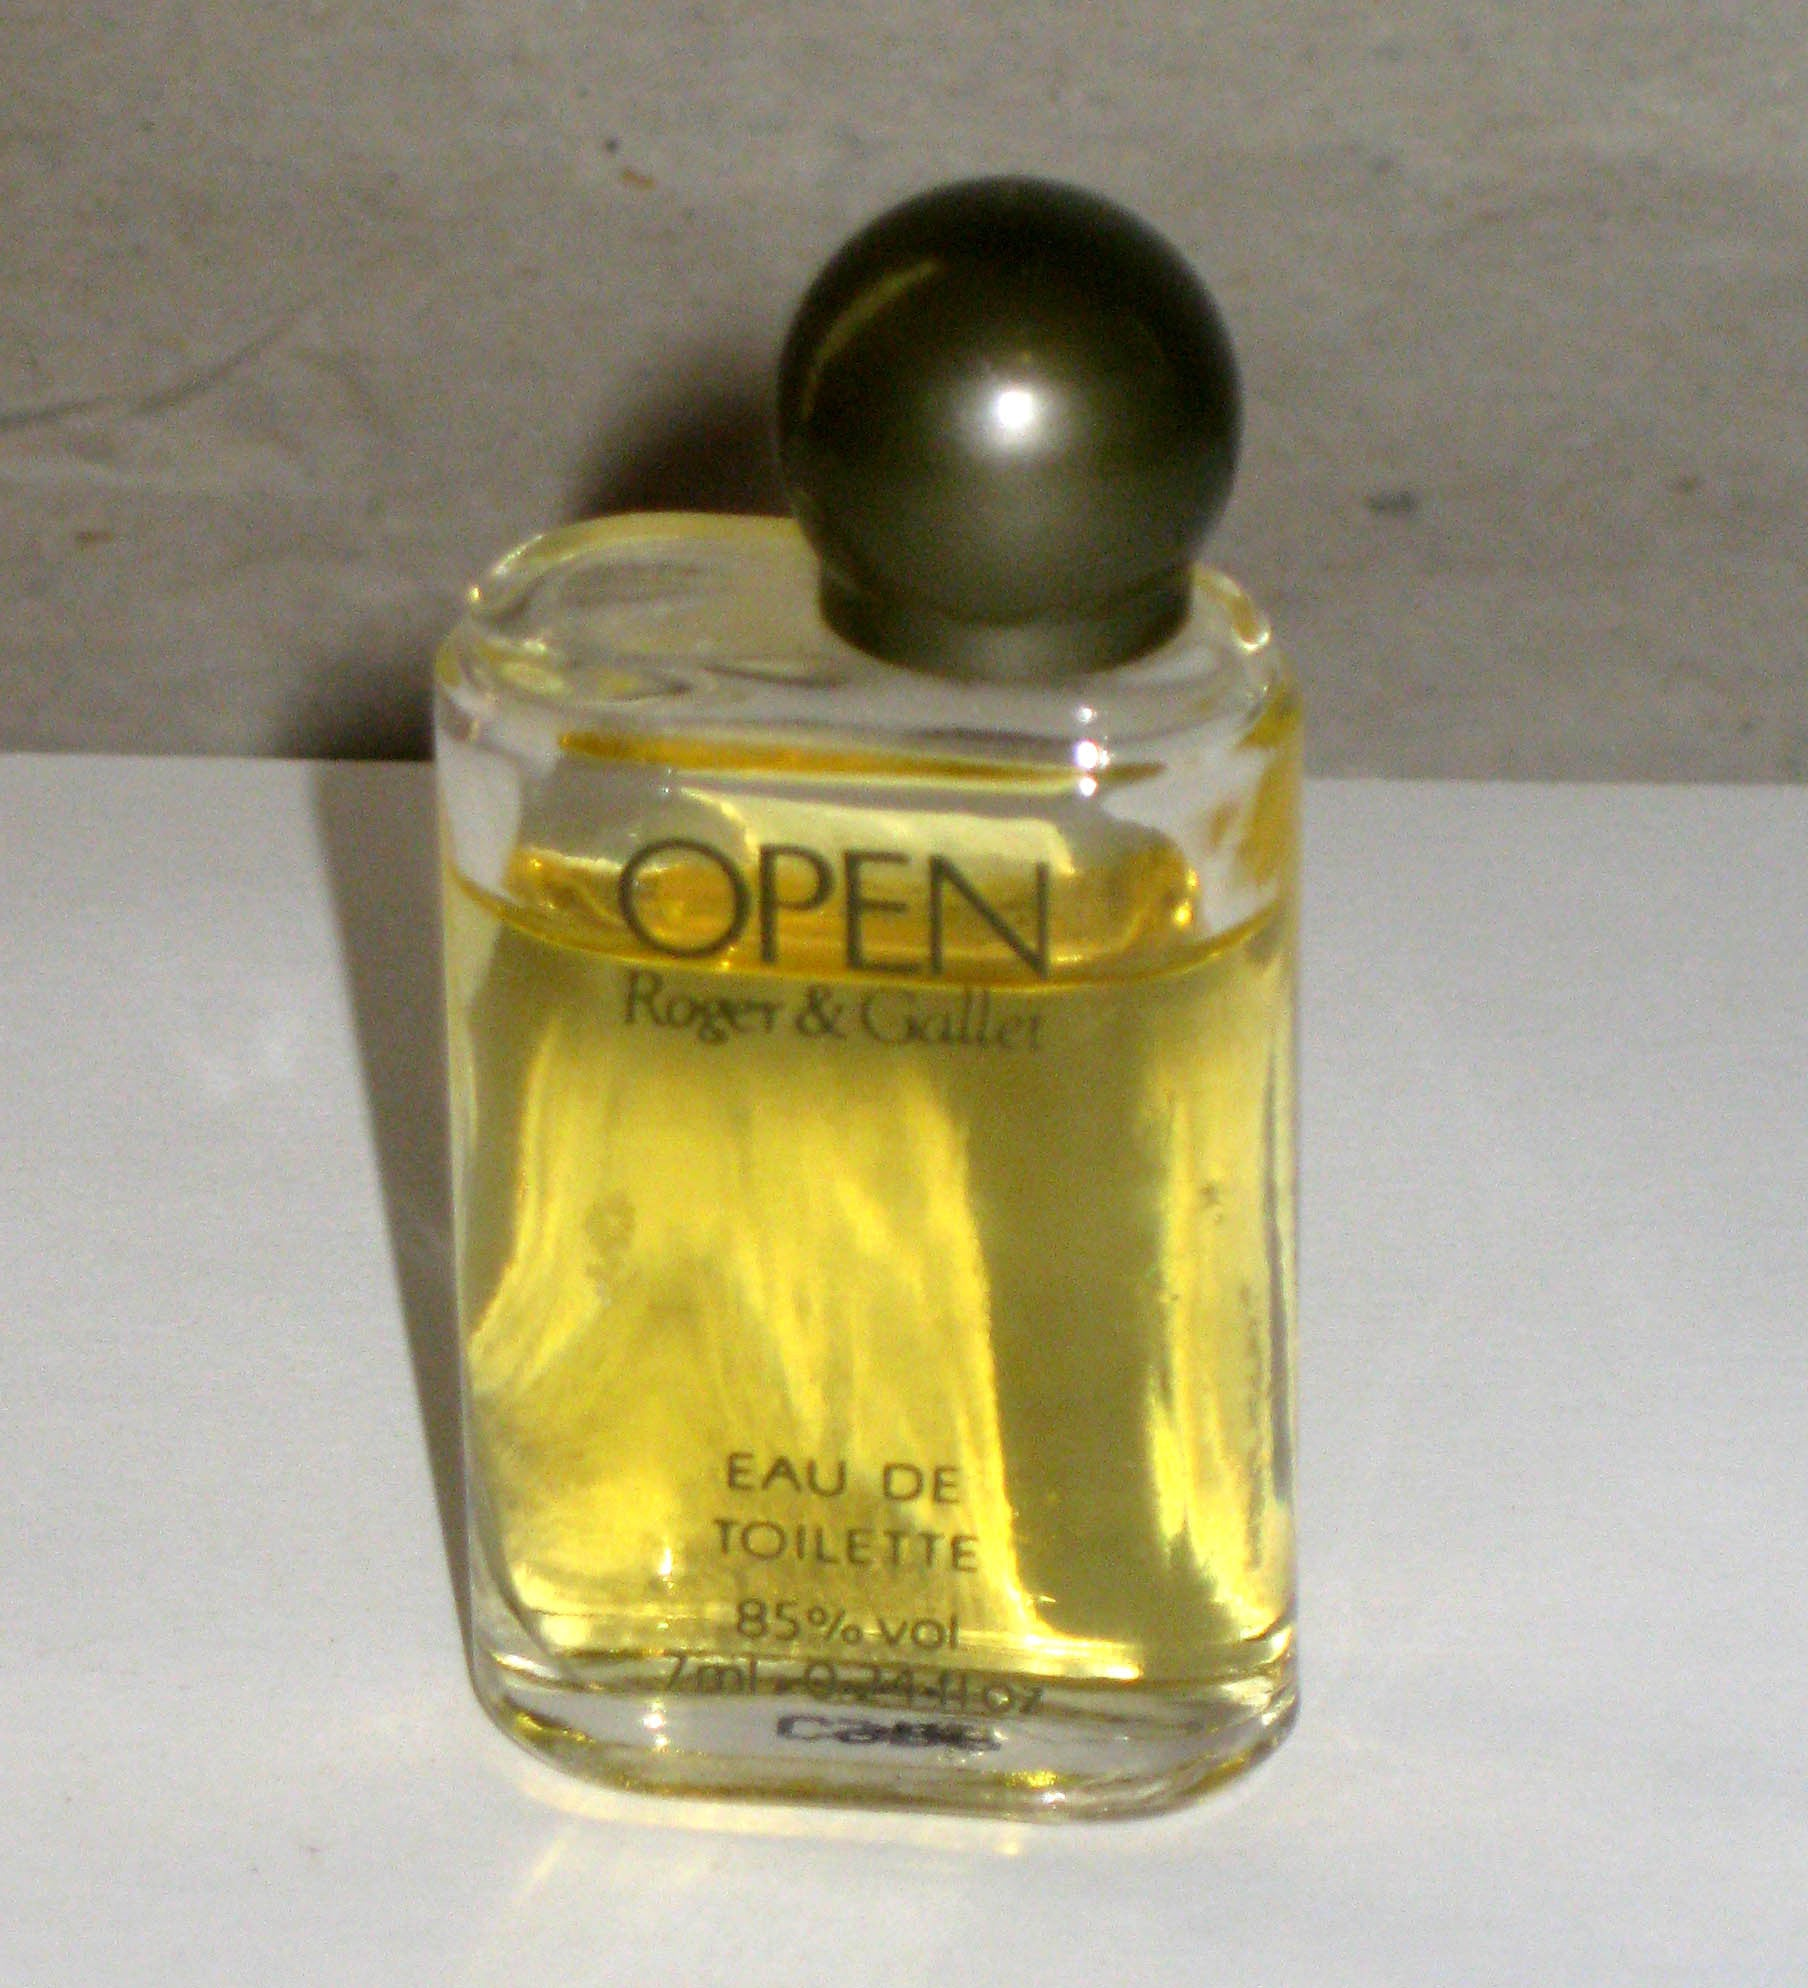 Roger & Gallet Open Eau de Toilette Mini